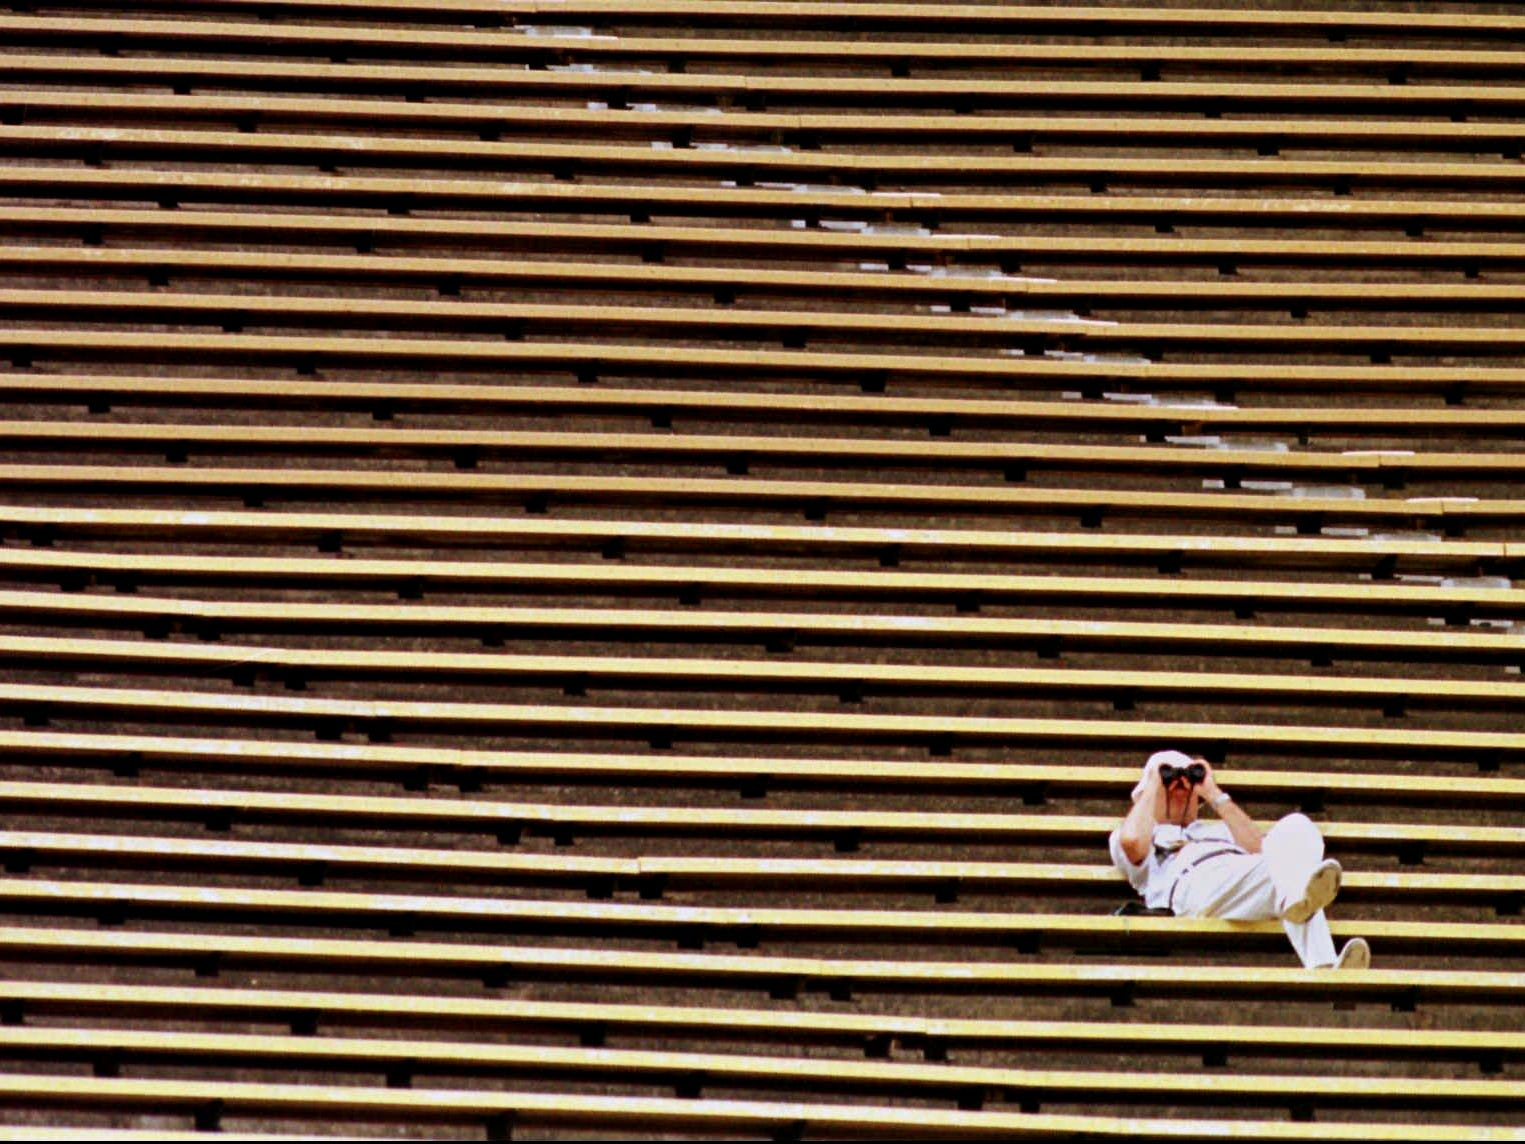 A lone fan watches the Baltimore Ravens defeat the Tennessee Oilers 36-10 from his choice of seats at Liberty Bowl Stadium in Memphis Sept. 21, 1997. A crowd of only 17,737 showed up for the game. The stadium capacity is 62,420.